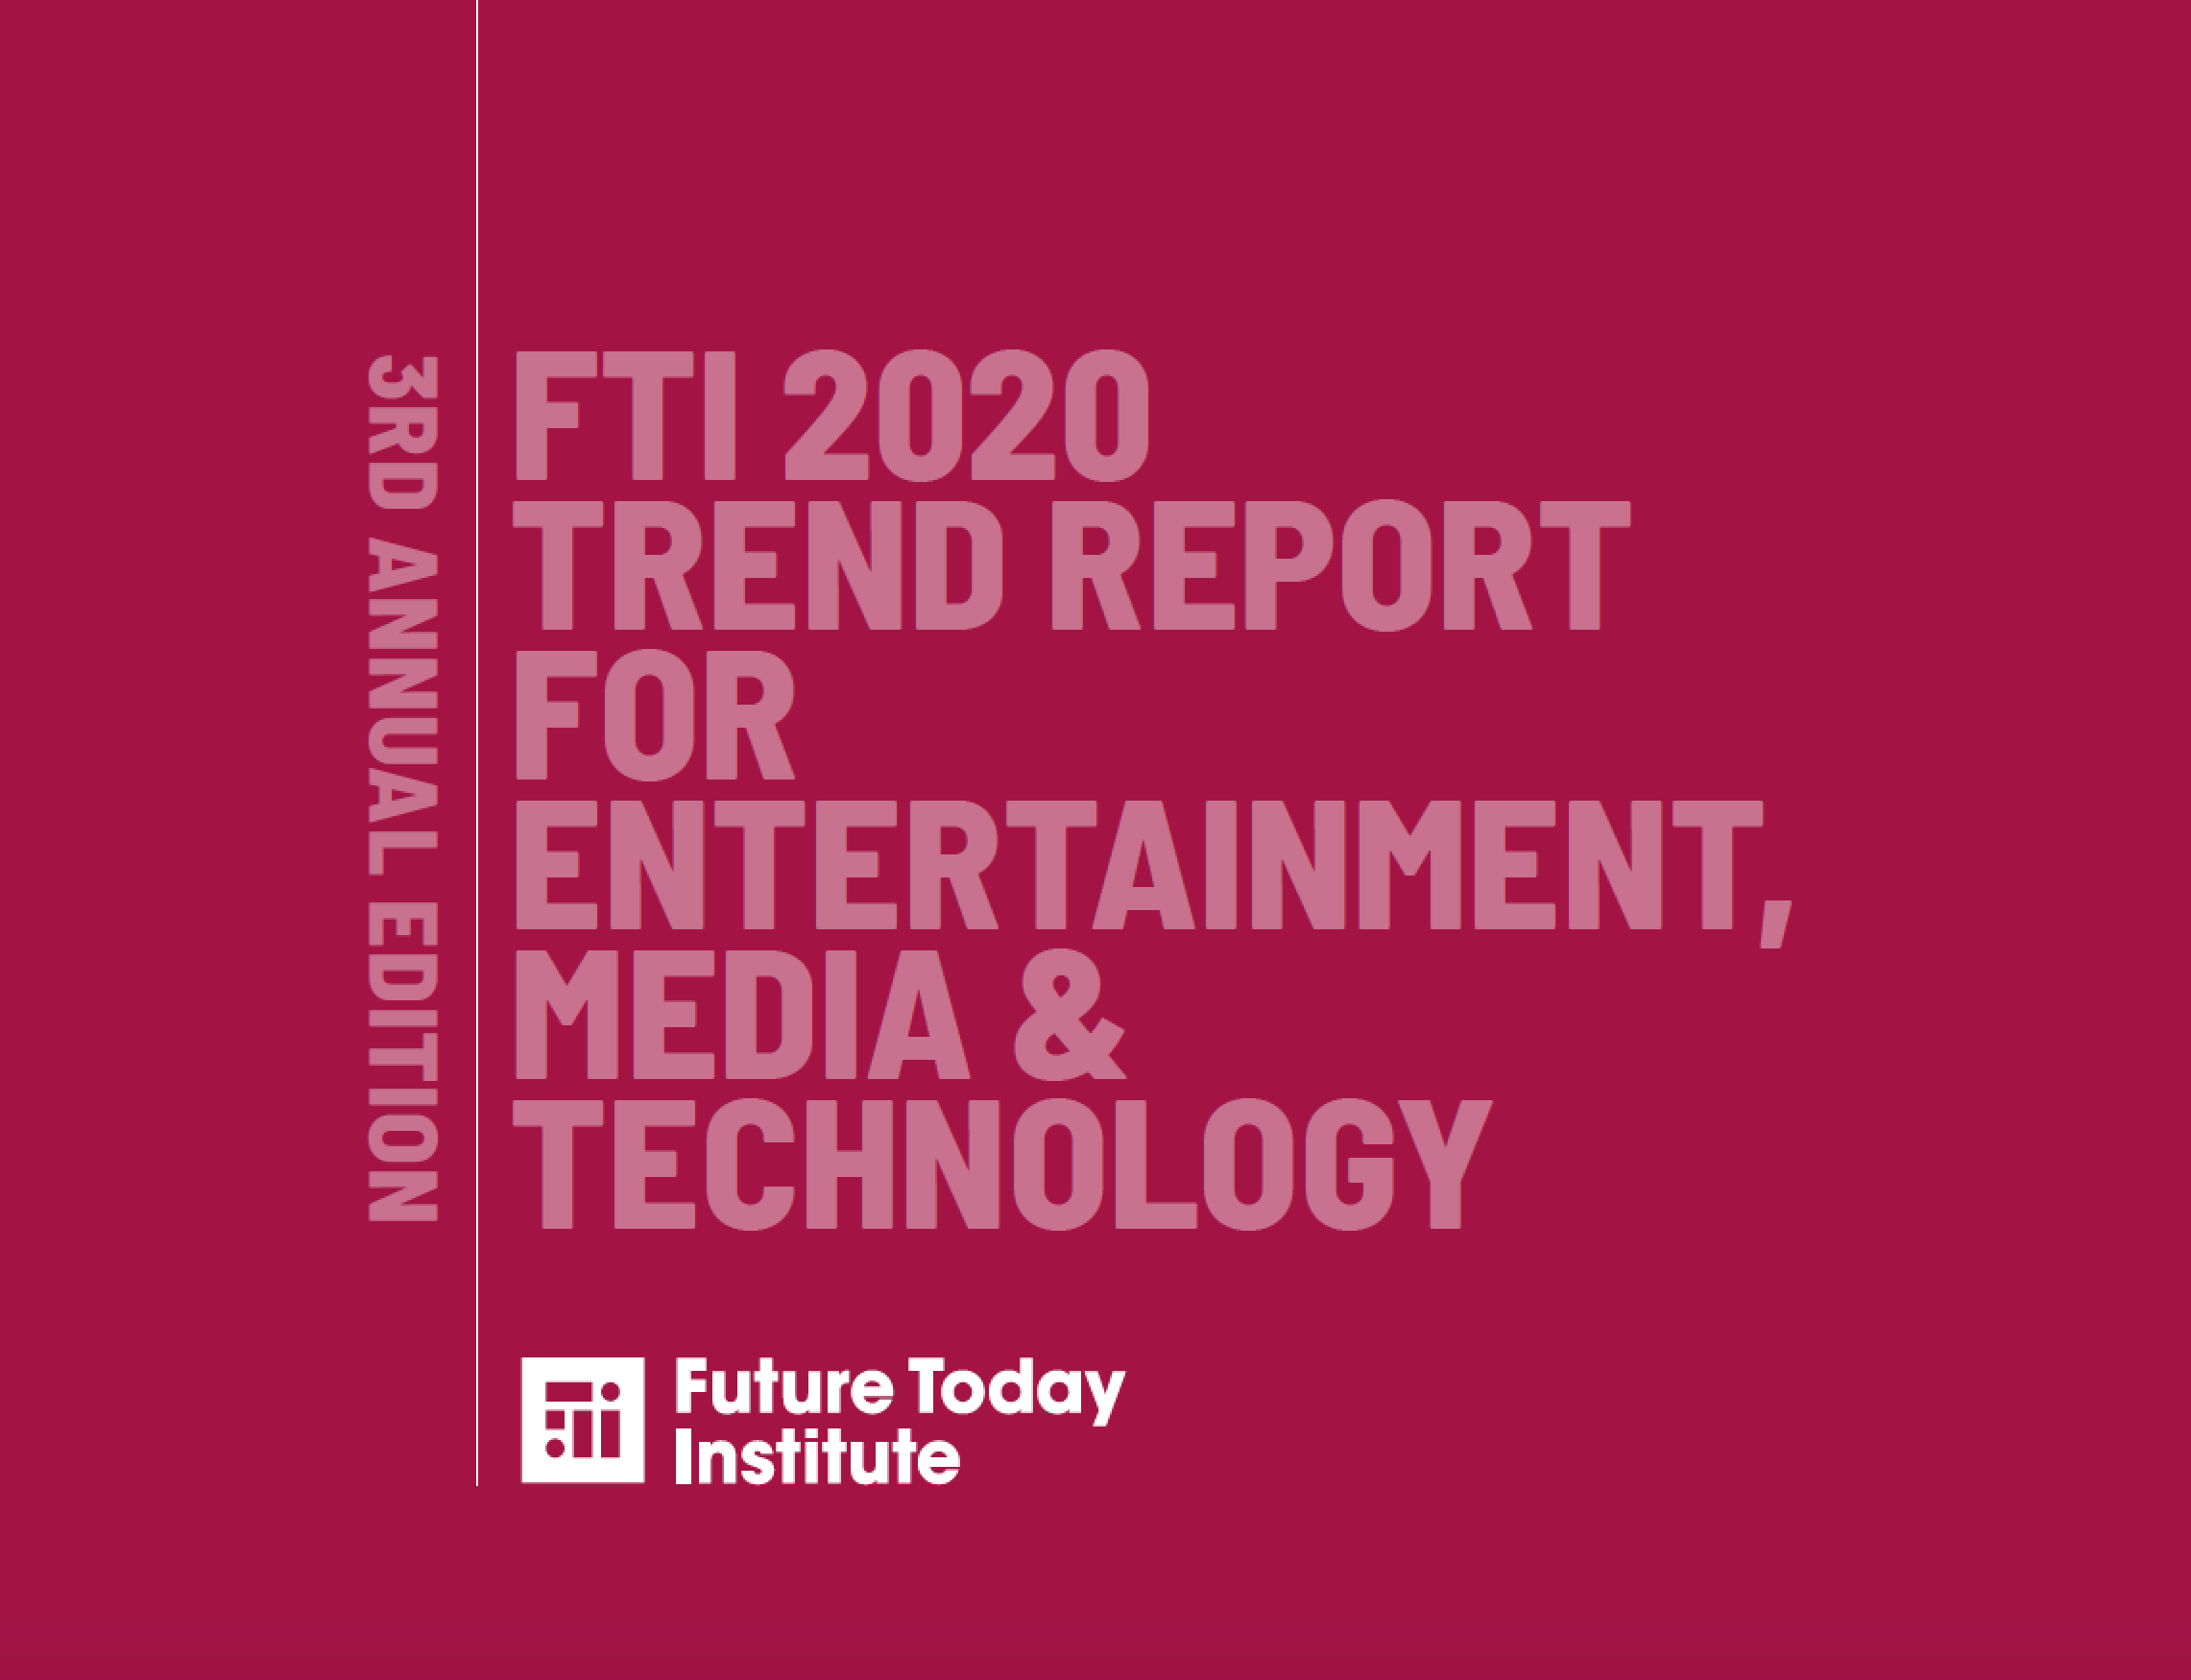 Cover des FTI 2020 Trend Report for Entertainment, Media & Technology